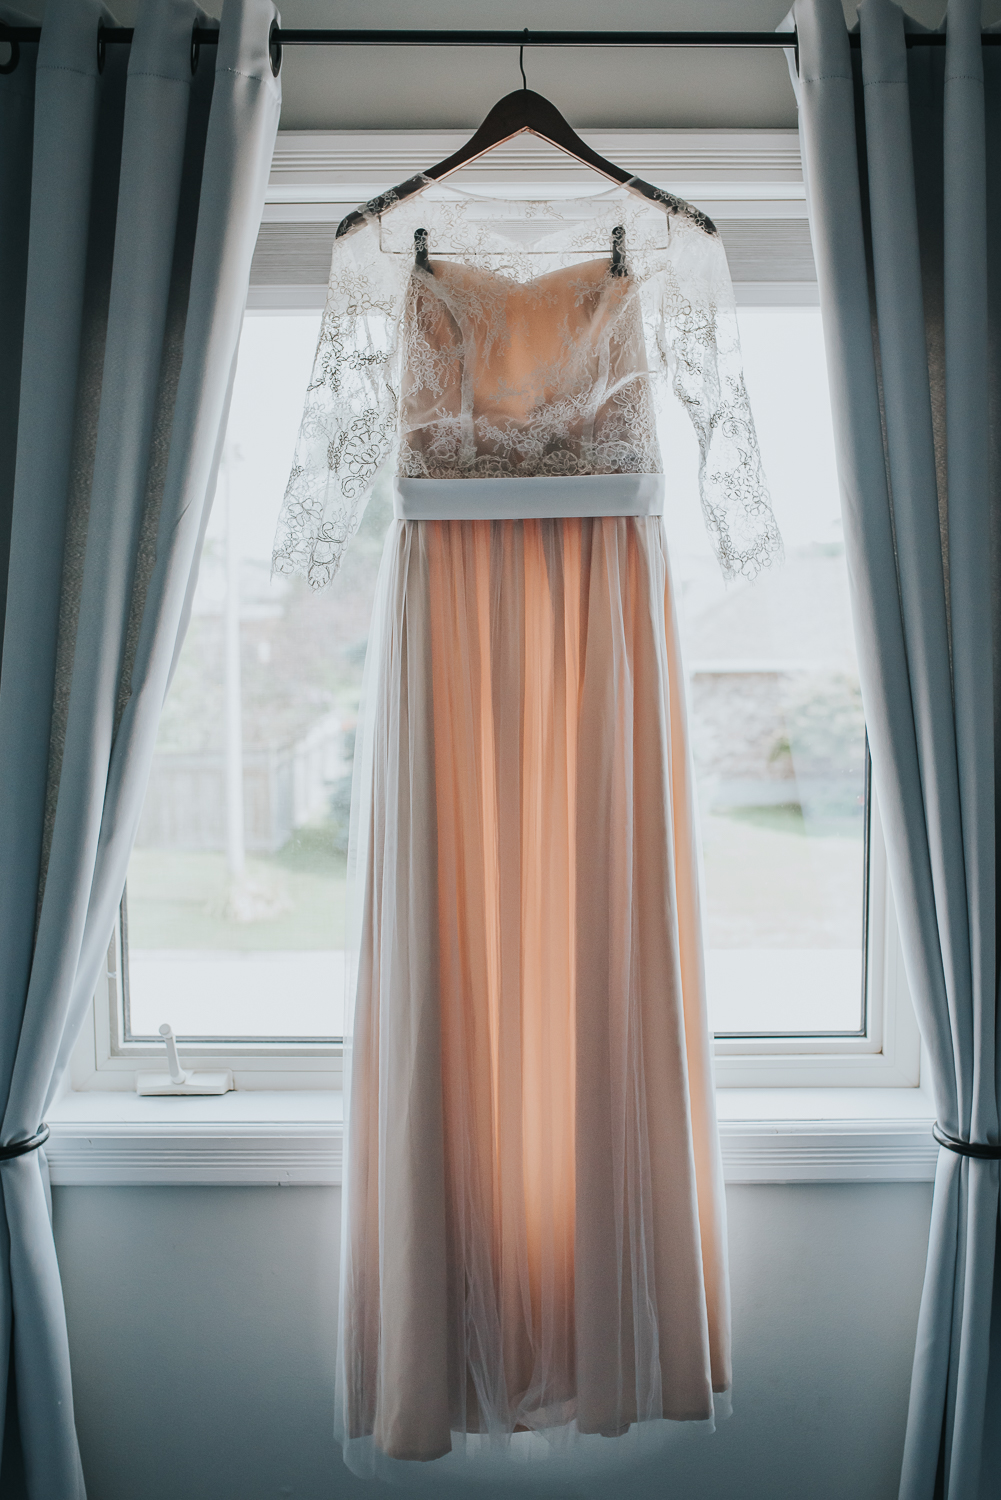 Blush wedding dress with off white lace overlay hanging in the window